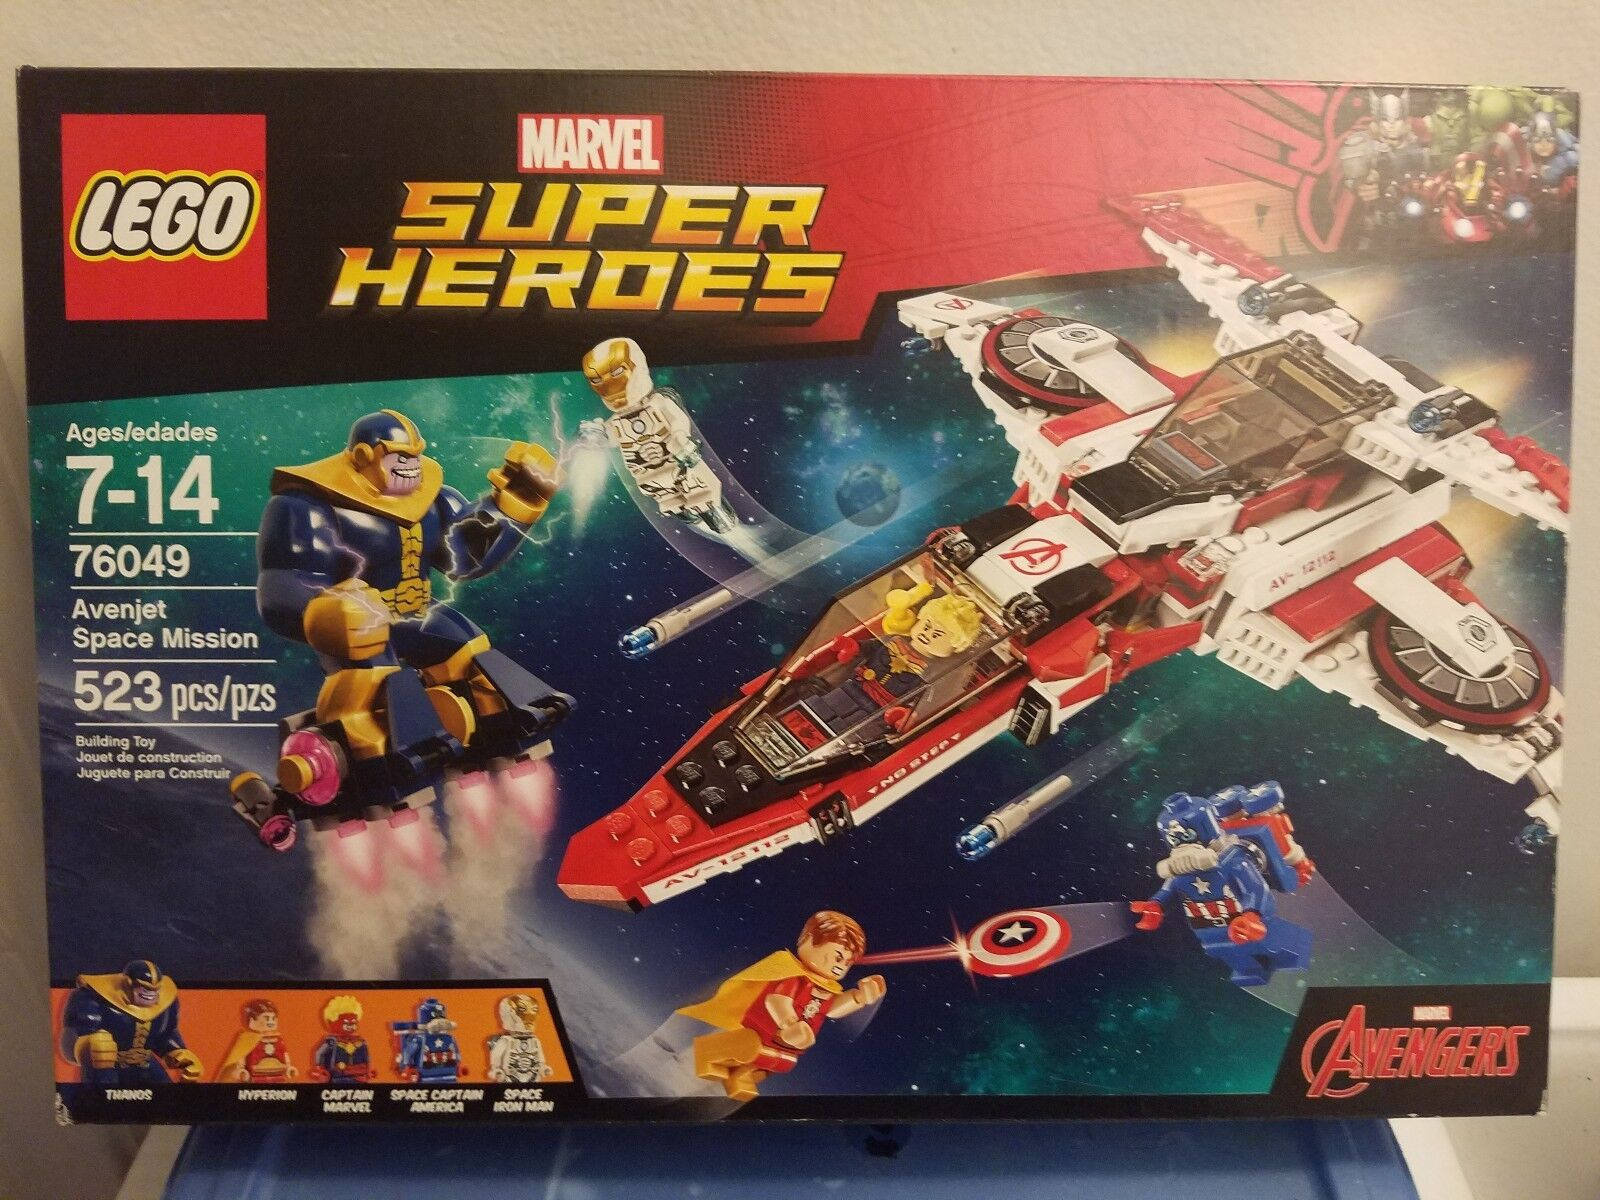 LEGO CAPTAIN Marvel Super Heroes Avenjet Space Mission (76049) Retired THANOS